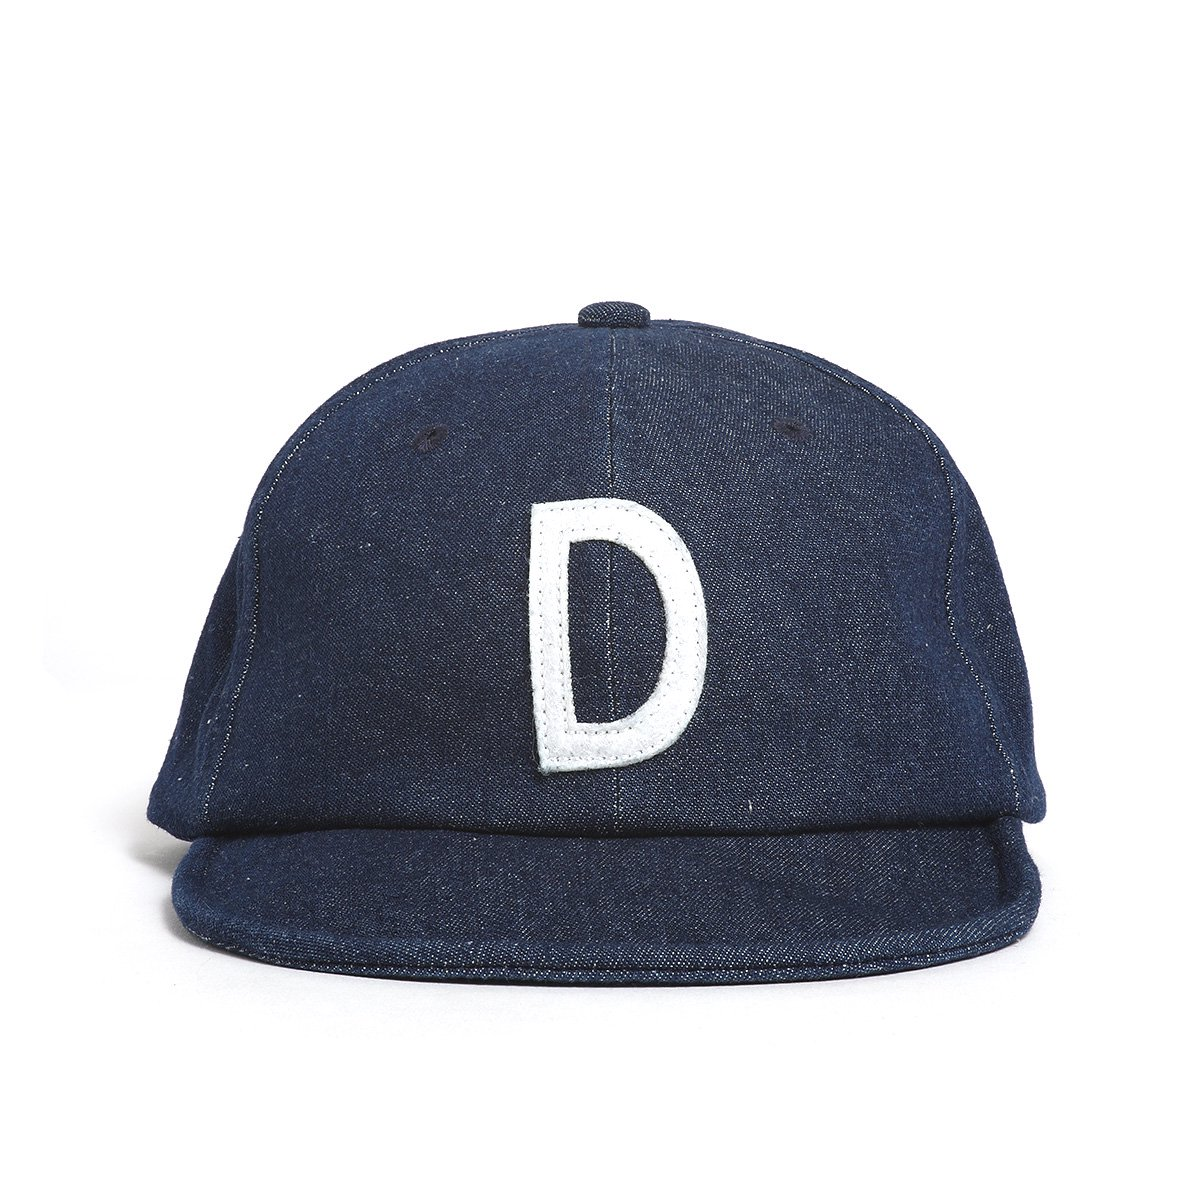 AtoZ Denim Logo CAP 詳細画像7